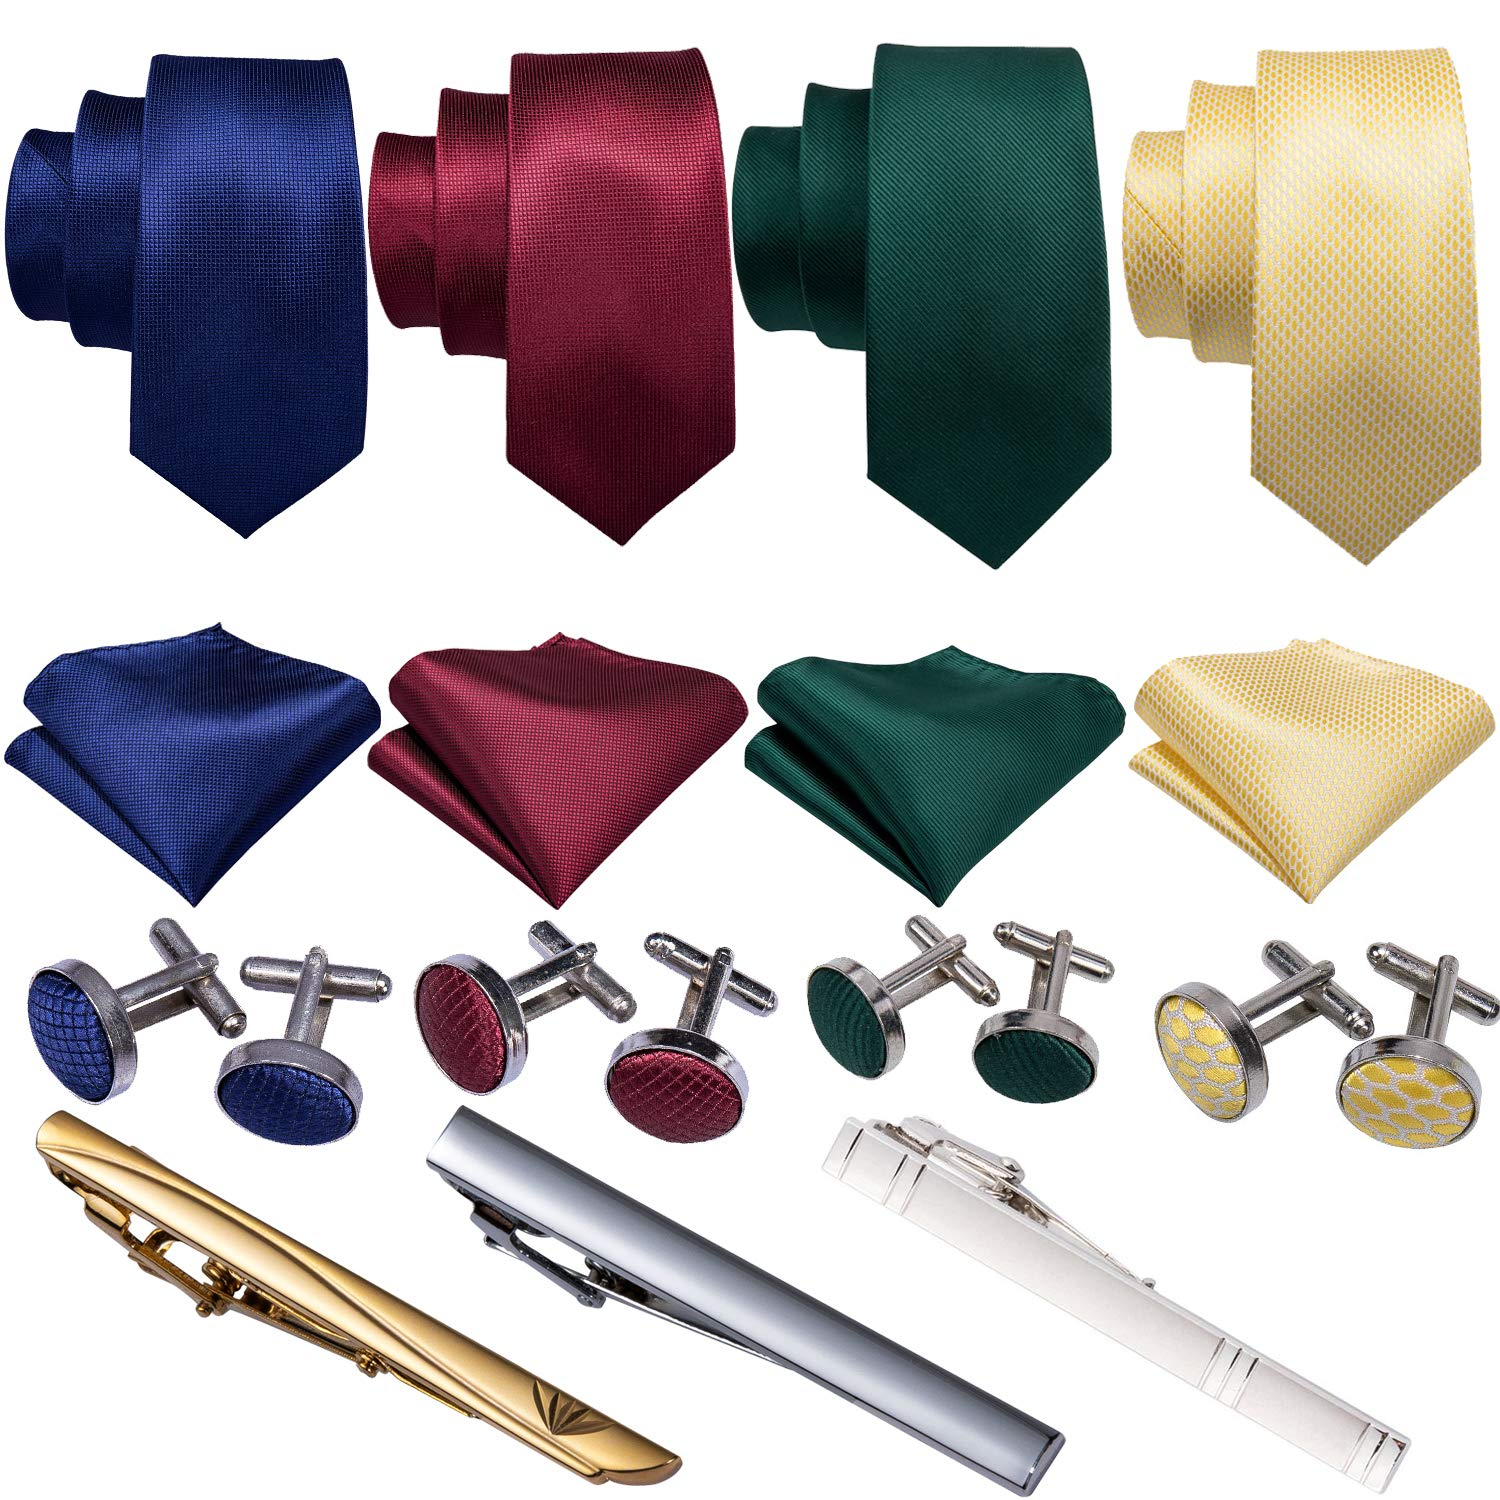 Barry.Wang Mens Luxury Tie Set Collection,Designer Necktie Clips Handkerchief Cufflink with Elegant Gift Box by Barry.Wang